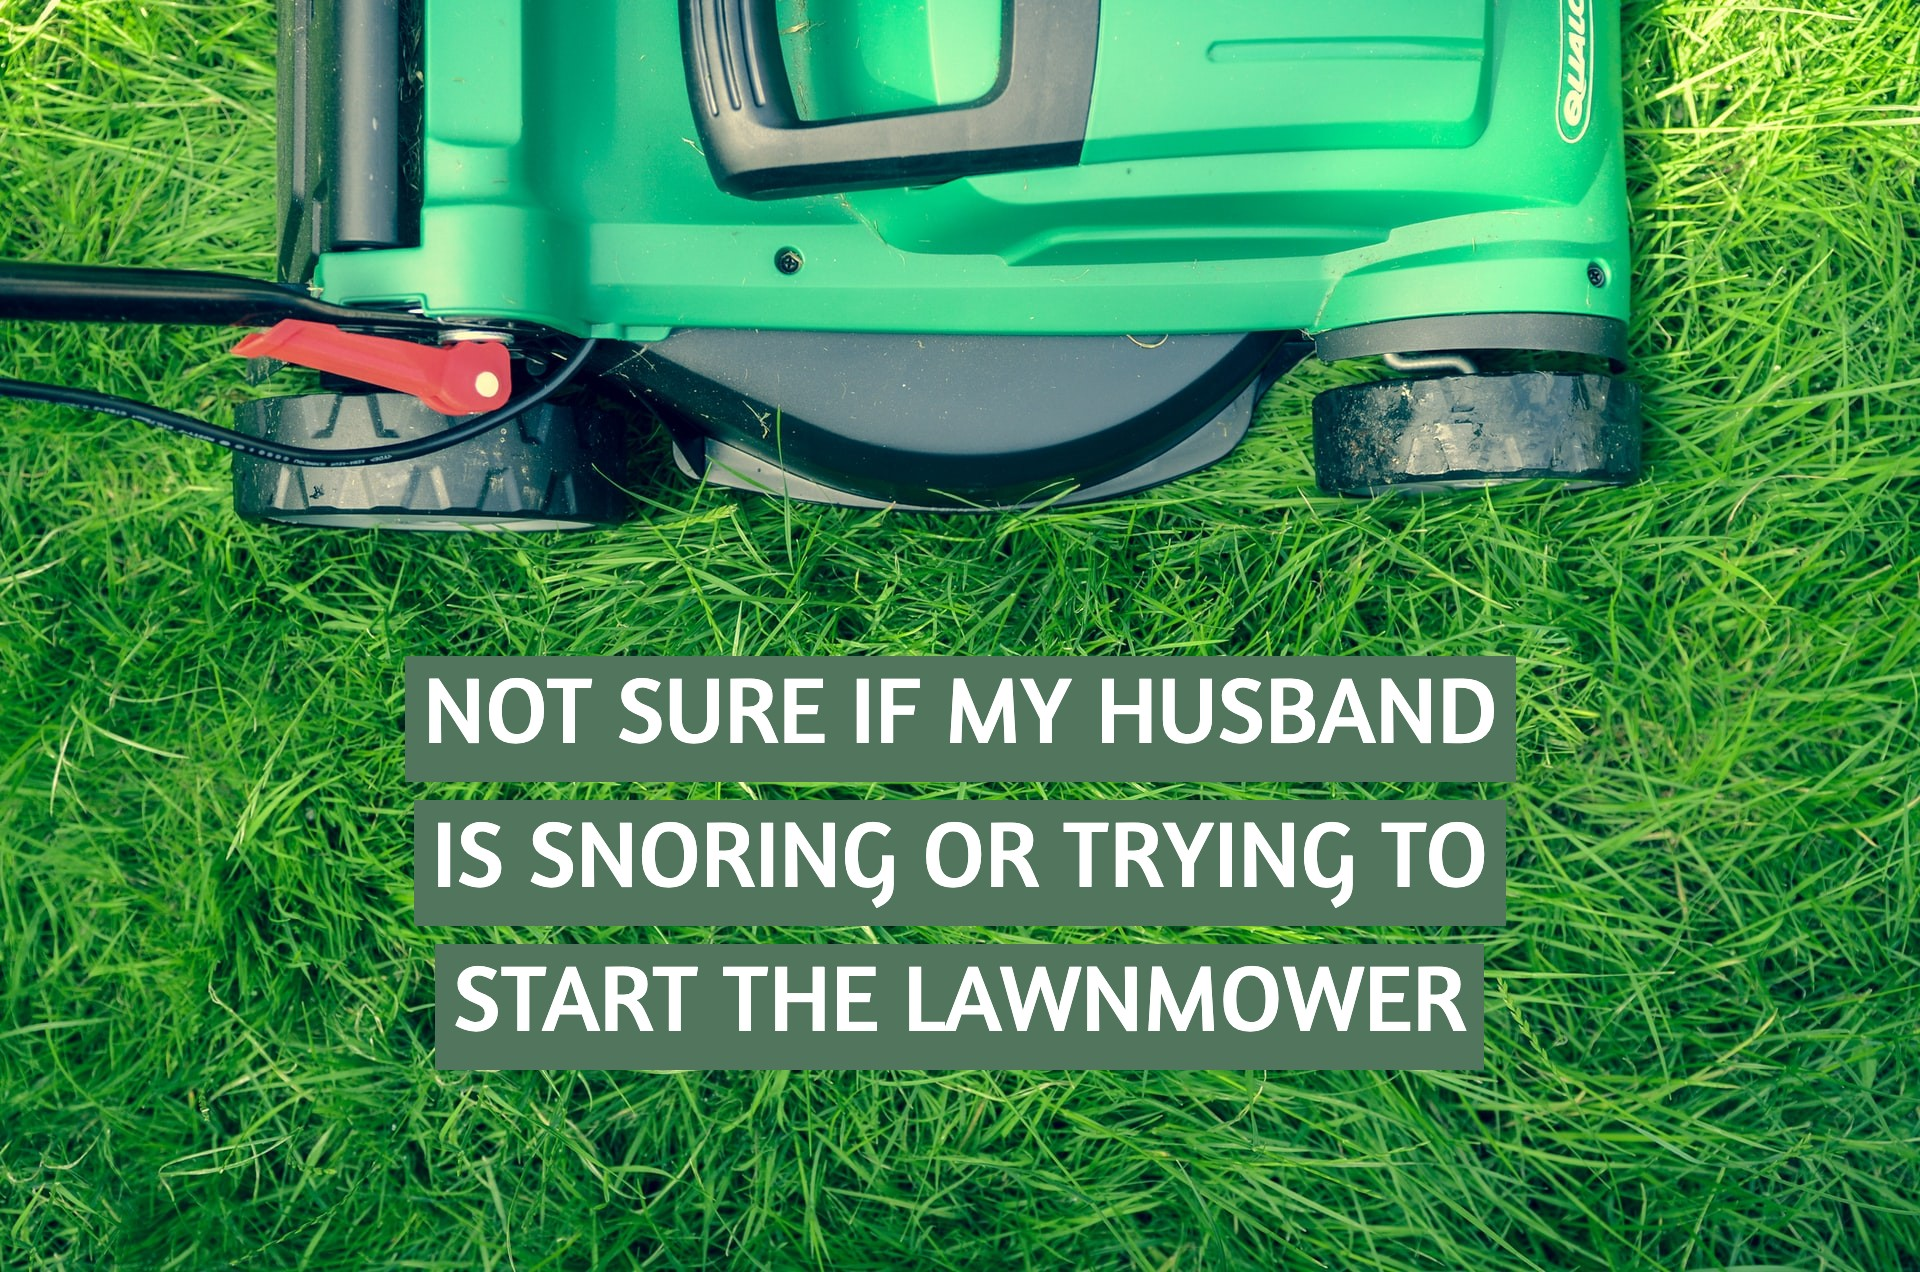 Not sure if my husband is snoring or trying to start the lawnmower.